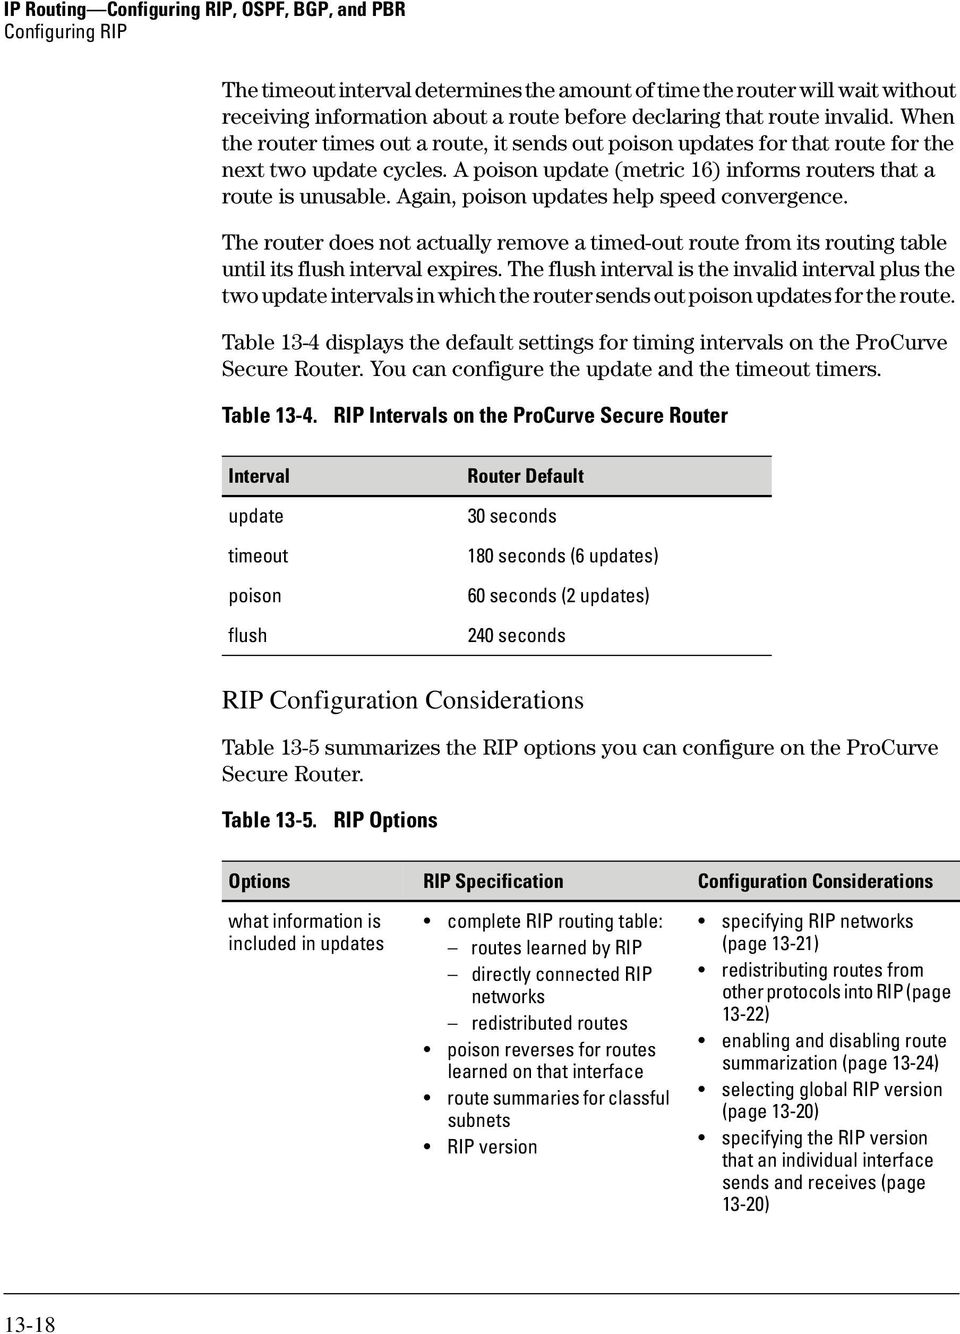 Ip Routing Configuring Rip Ospf Bgp And Pbr Pdf